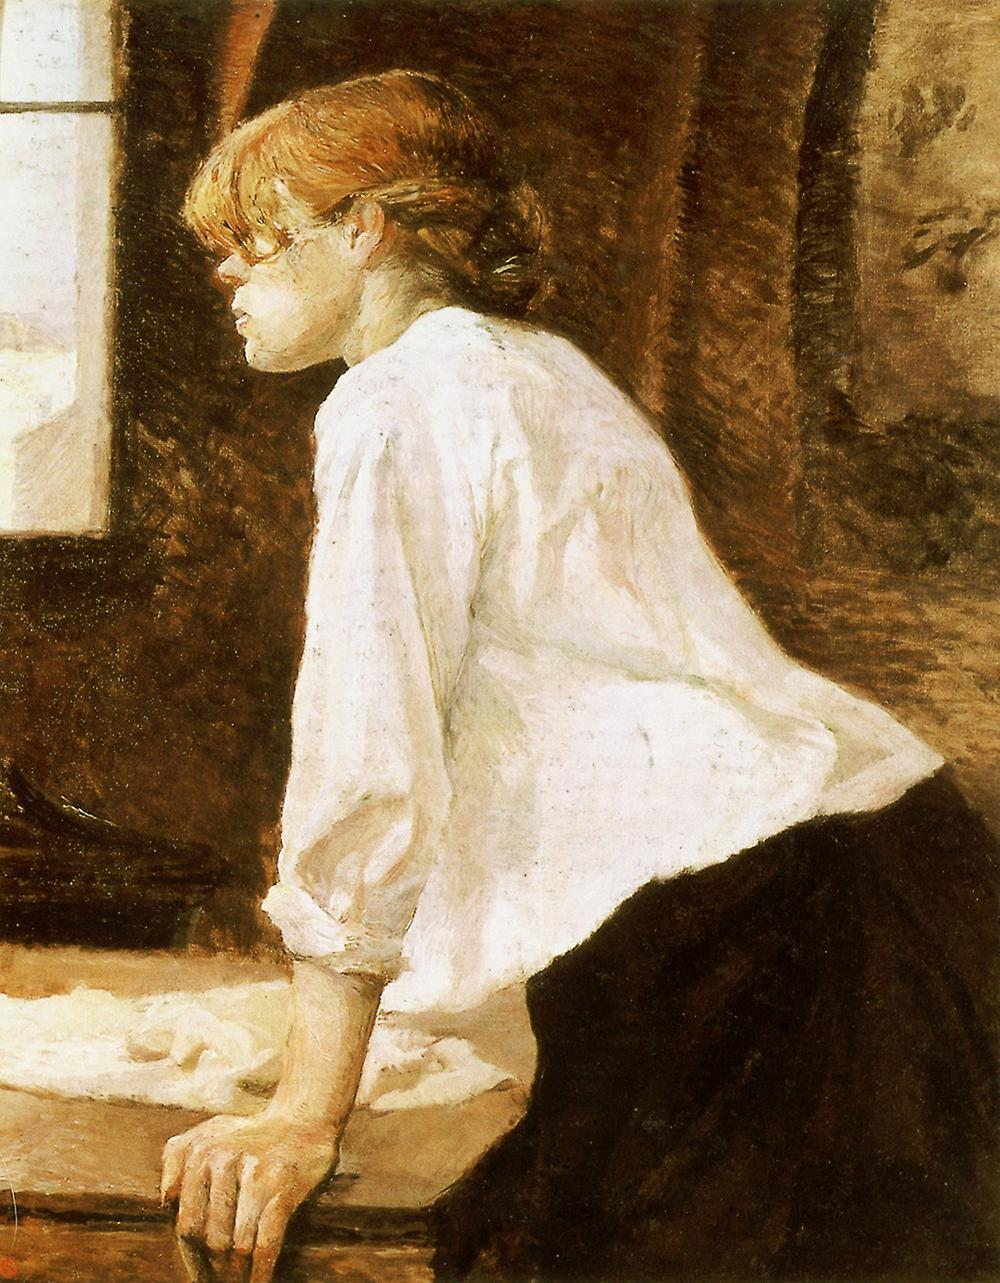 Henri Toulouse Lautrec - Leaning over Poster Print Giclee